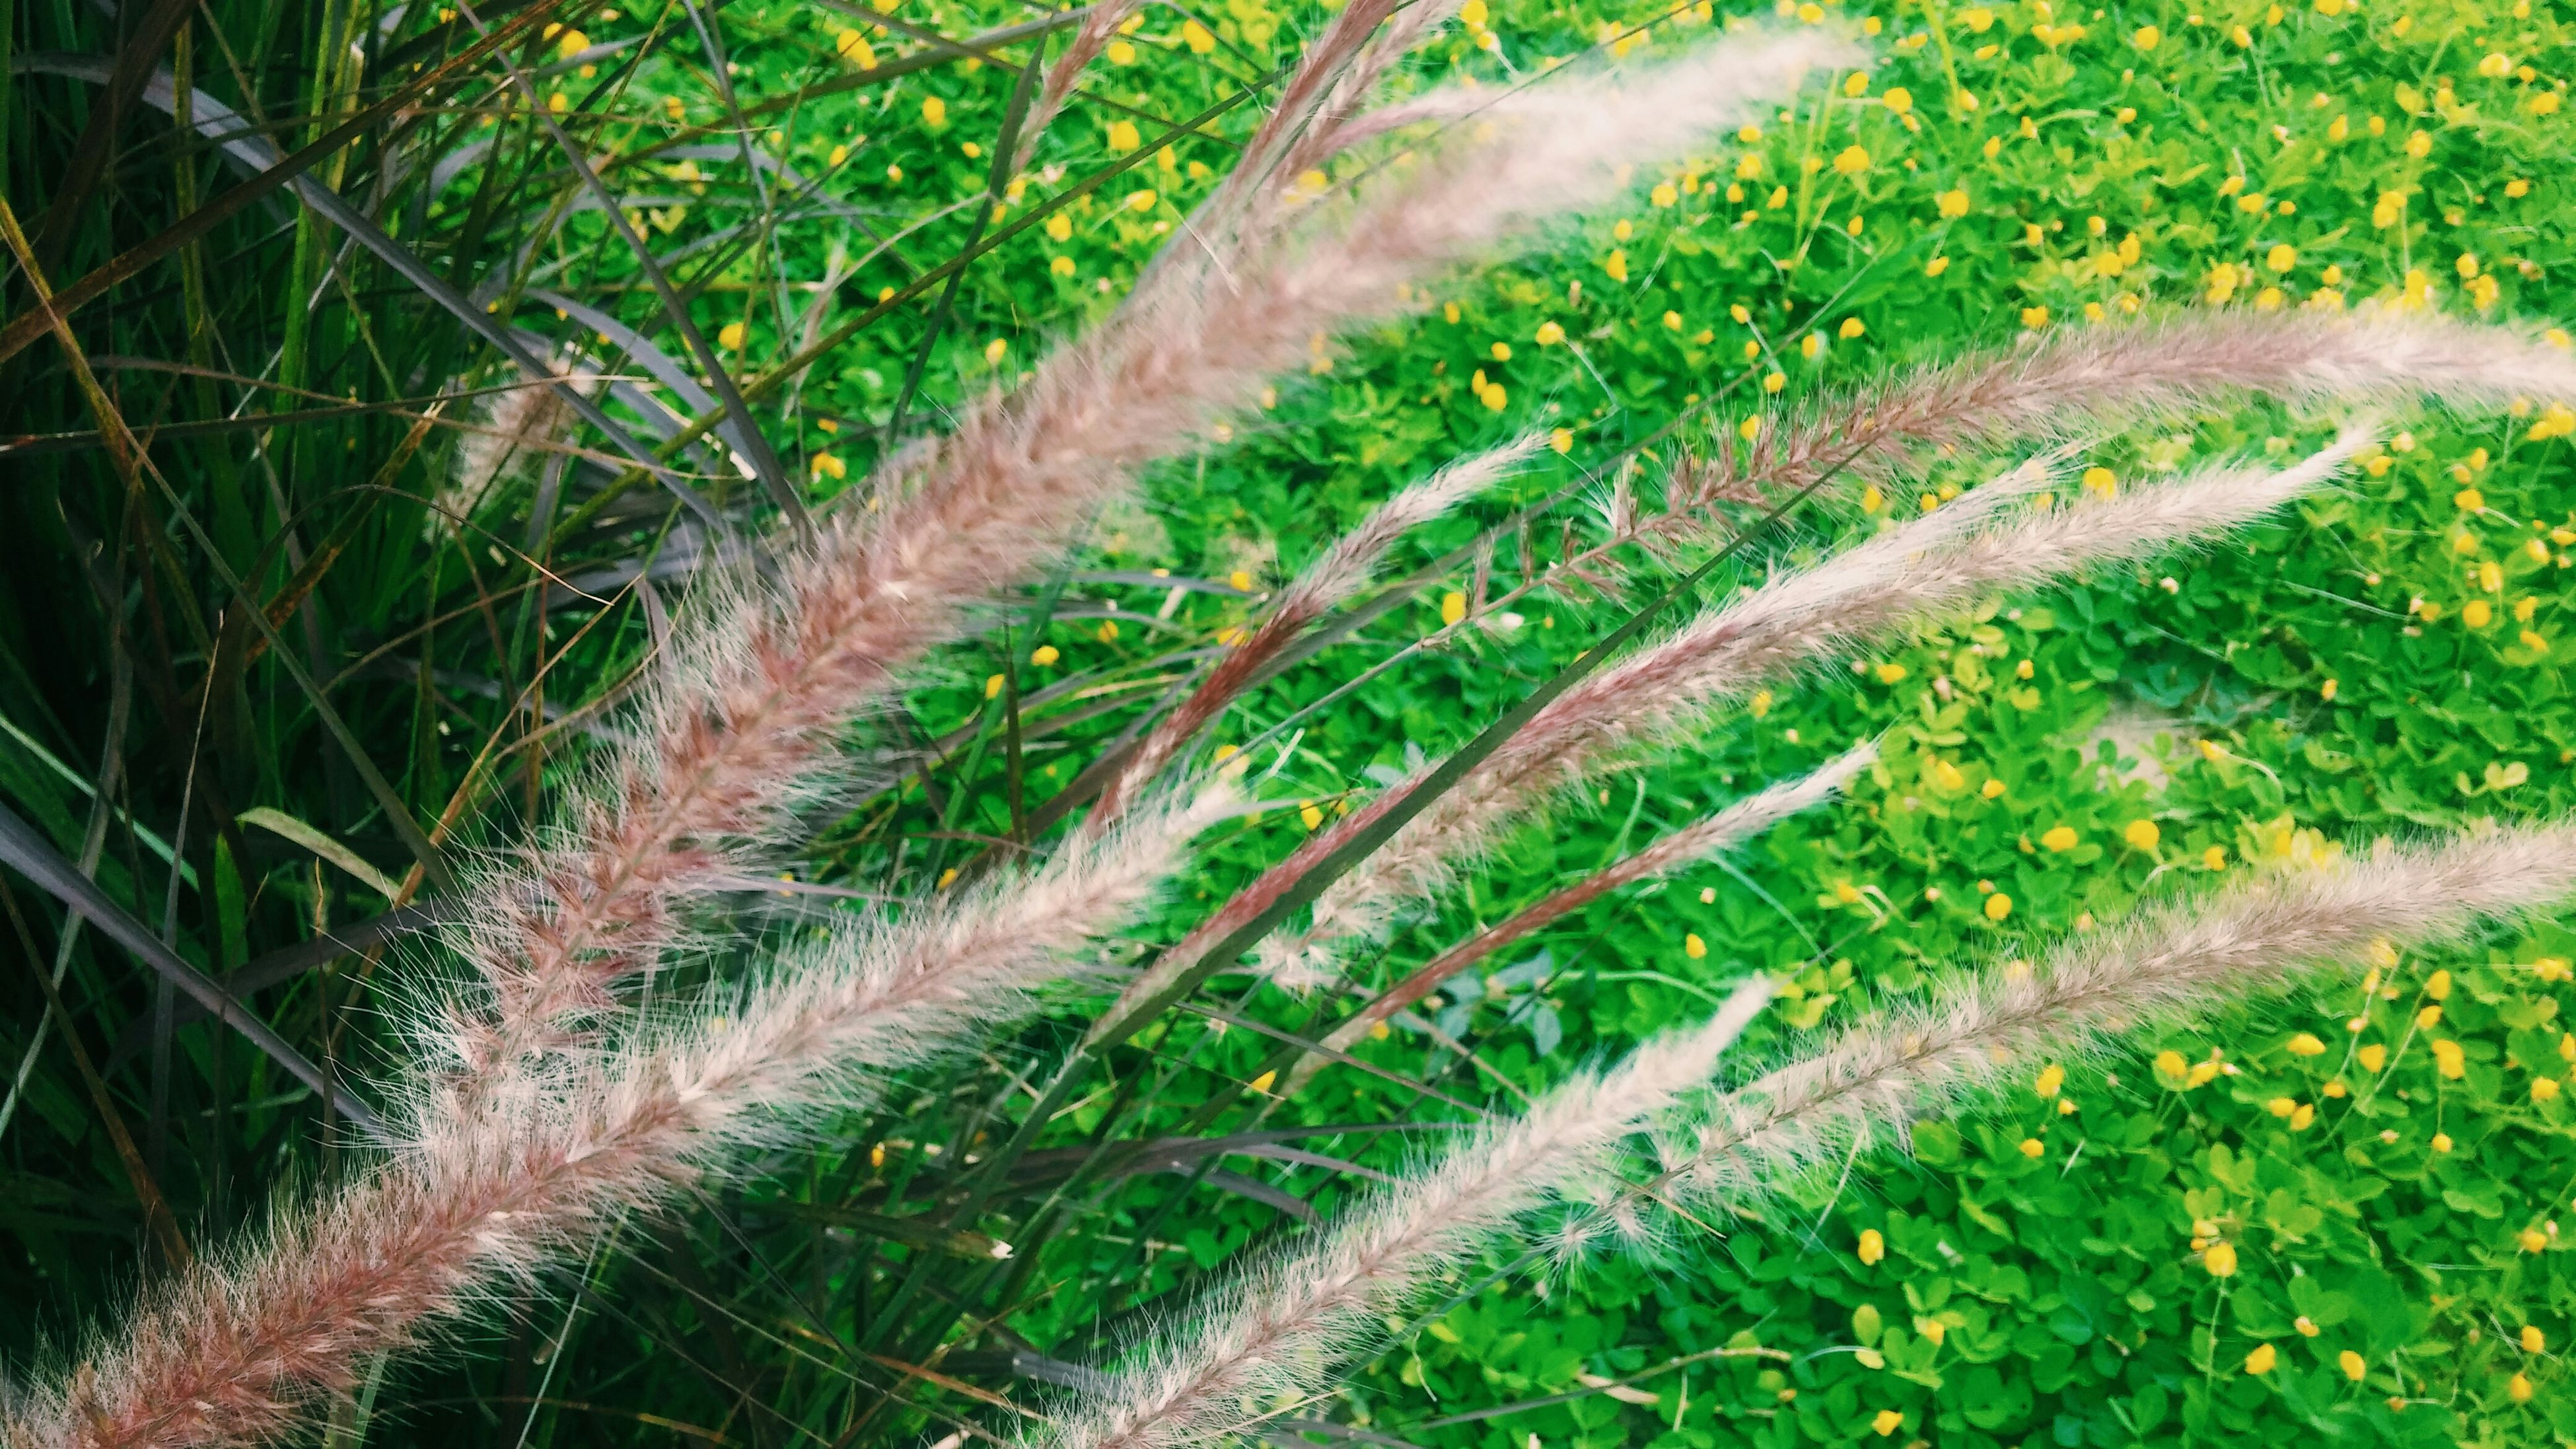 growth, grass, green color, plant, nature, field, tranquility, beauty in nature, close-up, day, high angle view, outdoors, growing, no people, green, focus on foreground, freshness, sunlight, tree, grassy